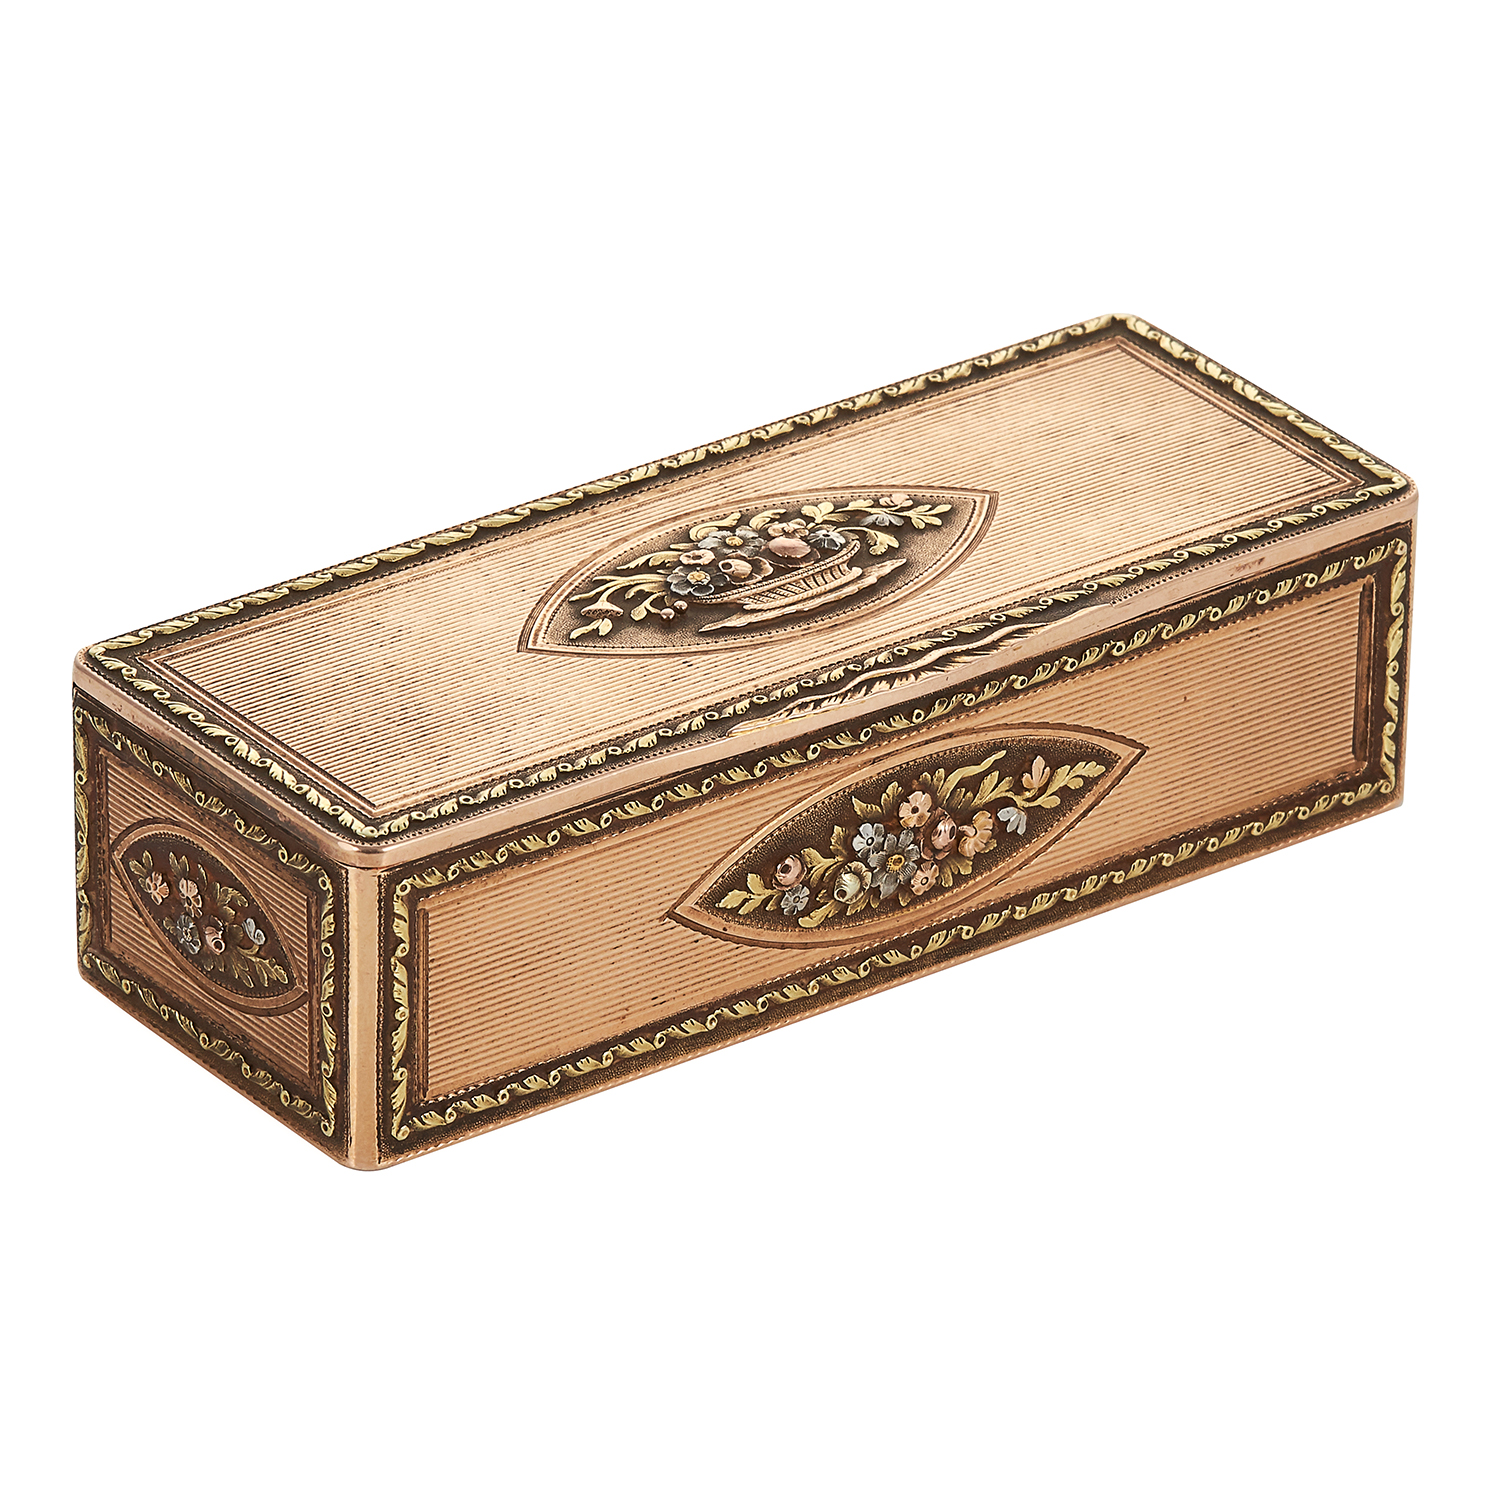 AN ANTIQUE GOLD SNUFF / TOBACCO BOX, FRENCH EARLY 19TH CENTURY in high carat gold, rectangular